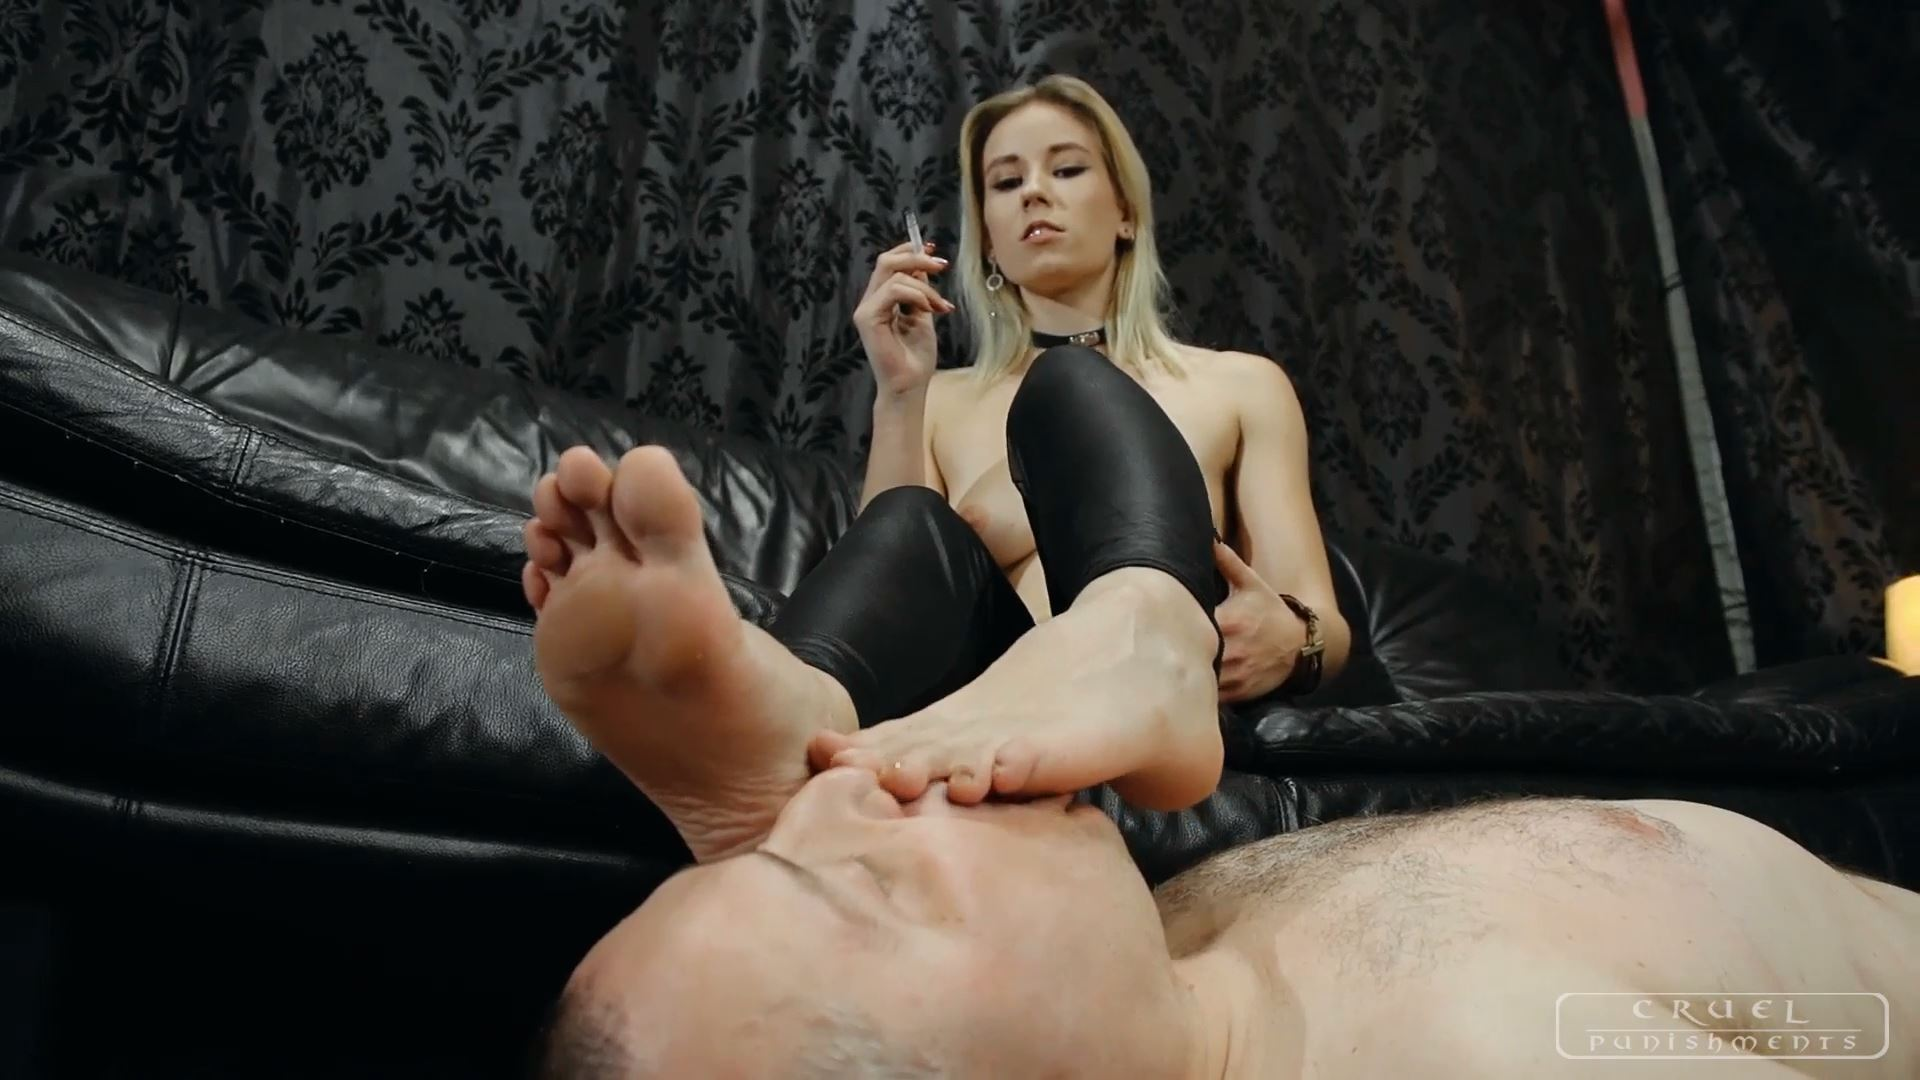 Mistress Anette In Scene: Feet sucker - CRUEL PUNISHMENTS - SEVERE FEMDOM - FULL HD/1080p/MP4